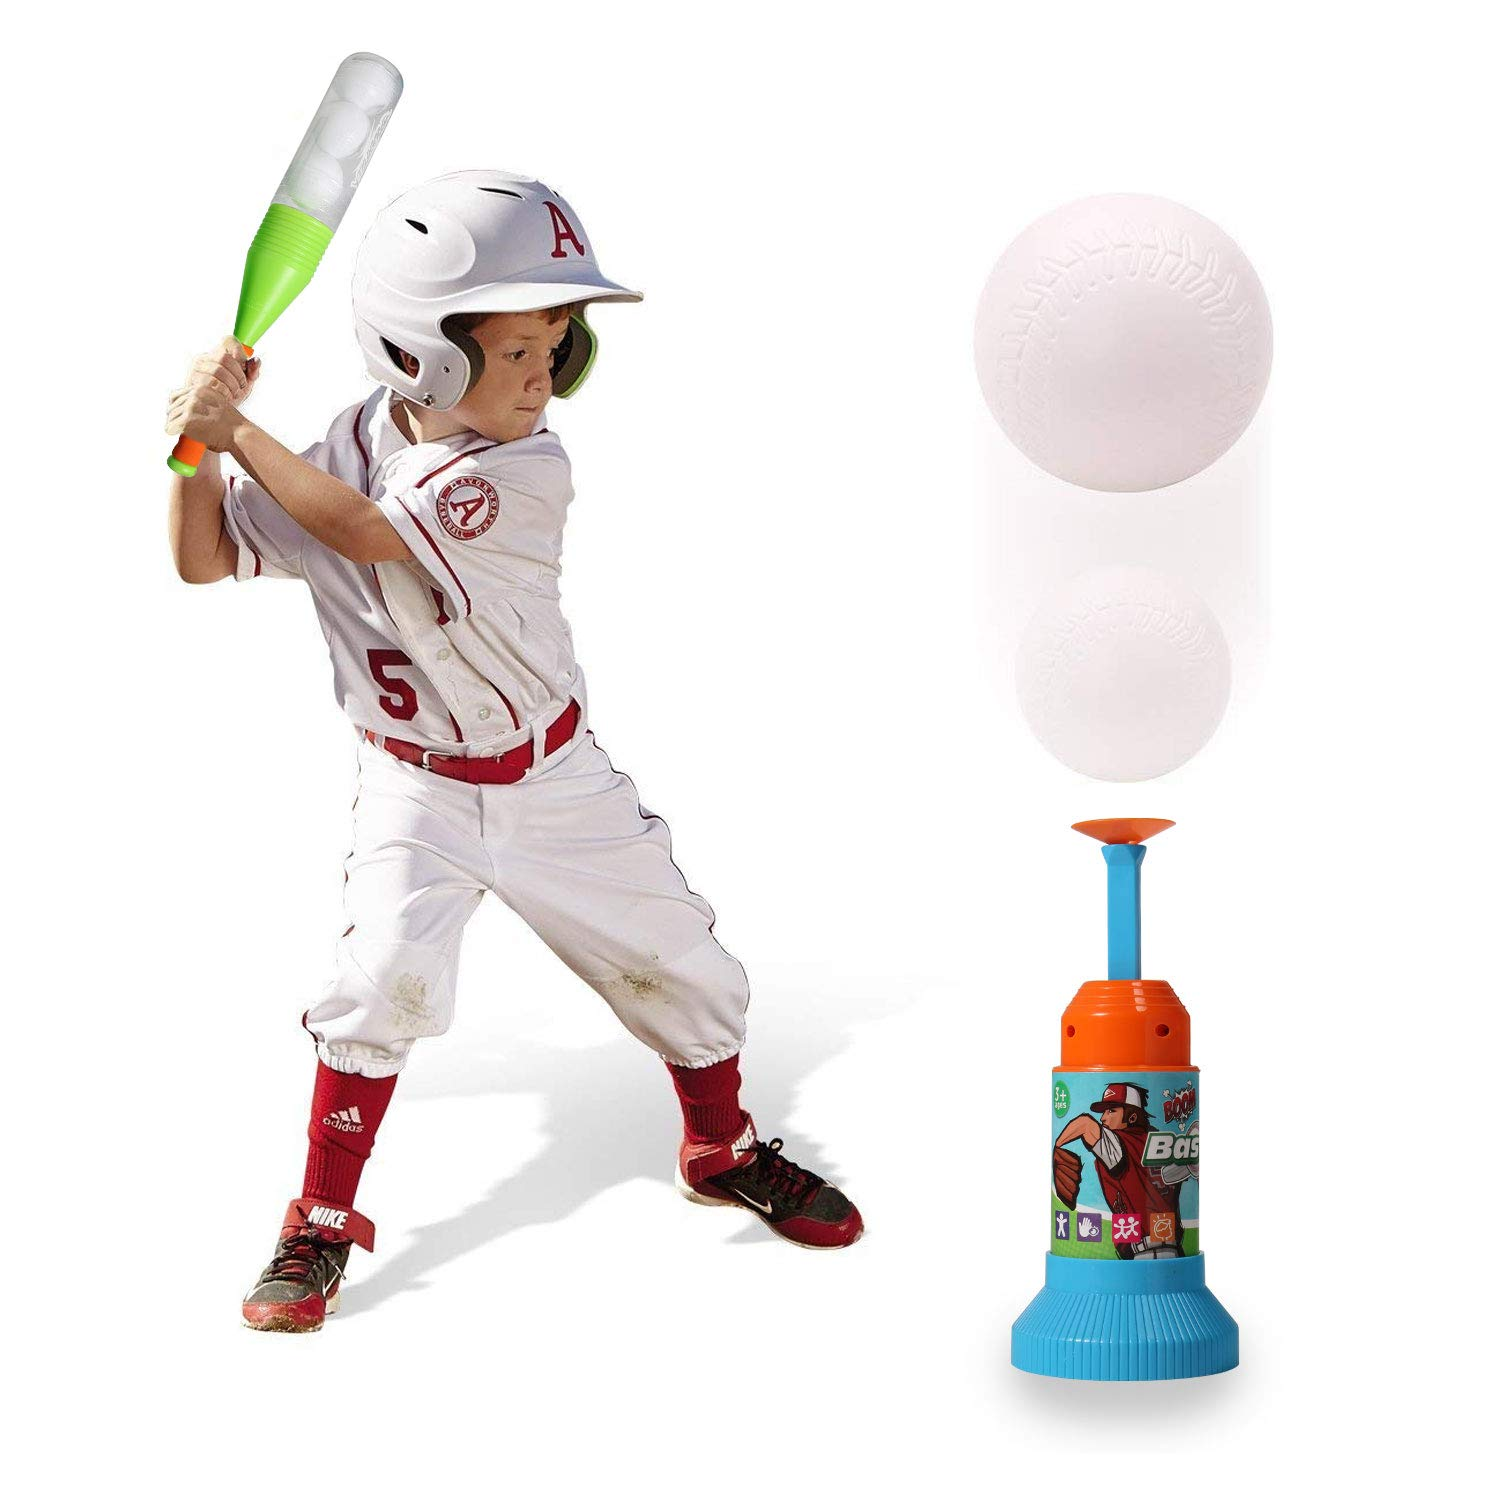 EXERCISE N PLAY Training Automatic LauncherBaseball Bat Toys - Indoor Outdoor Sports Baseball Games T-Ball Set for Children by EXERCISE N PLAY